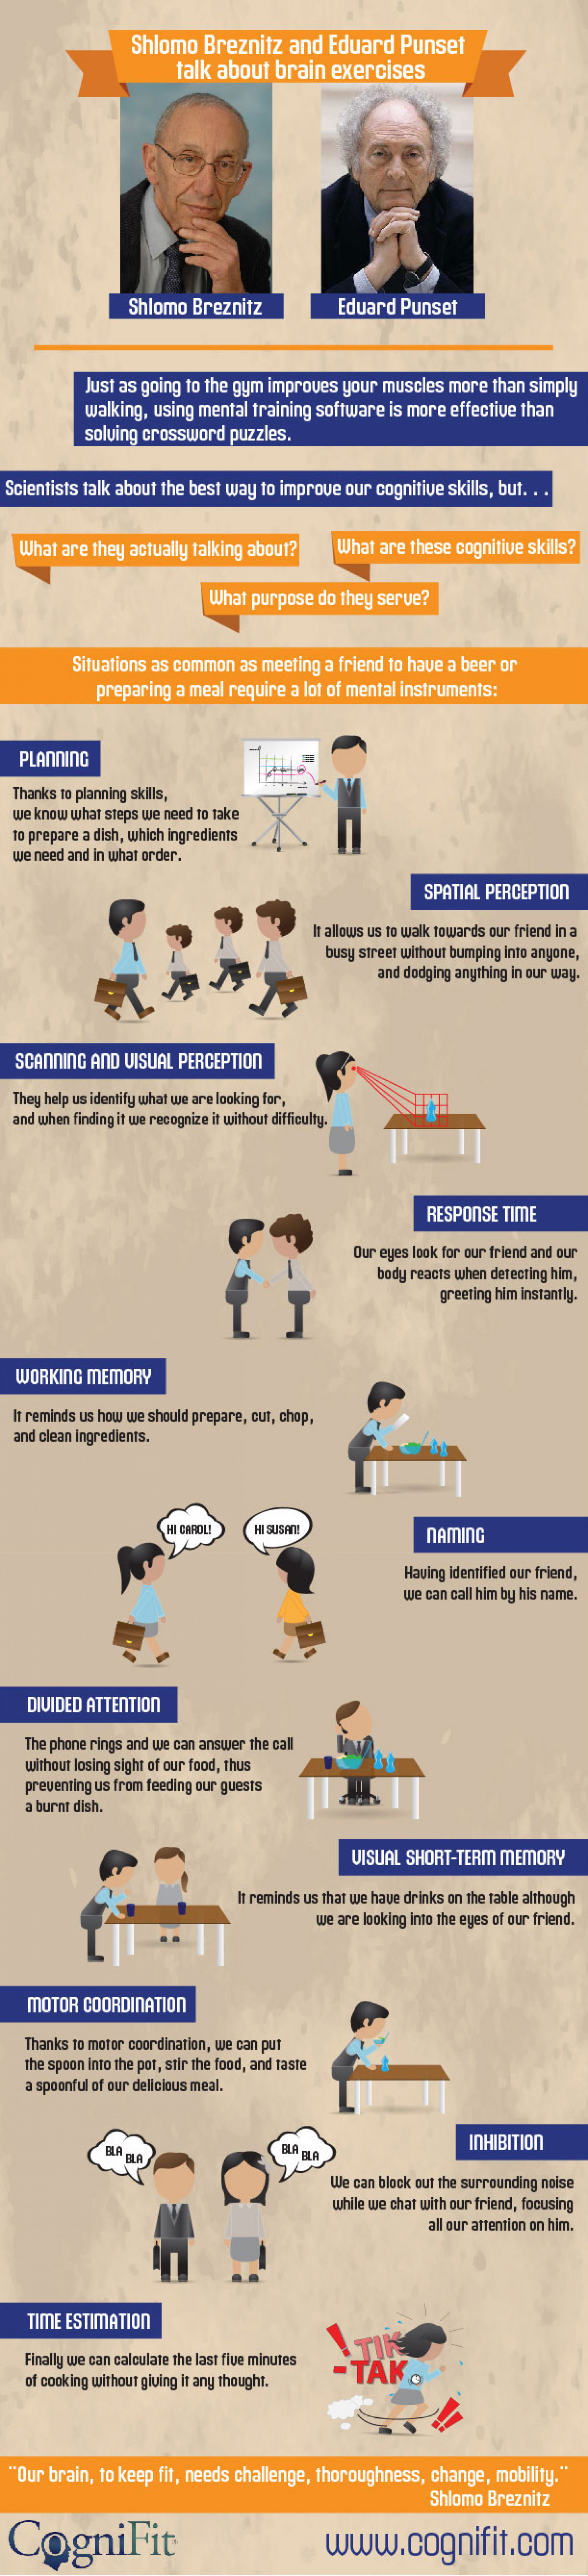 Cognitive skills Infographic